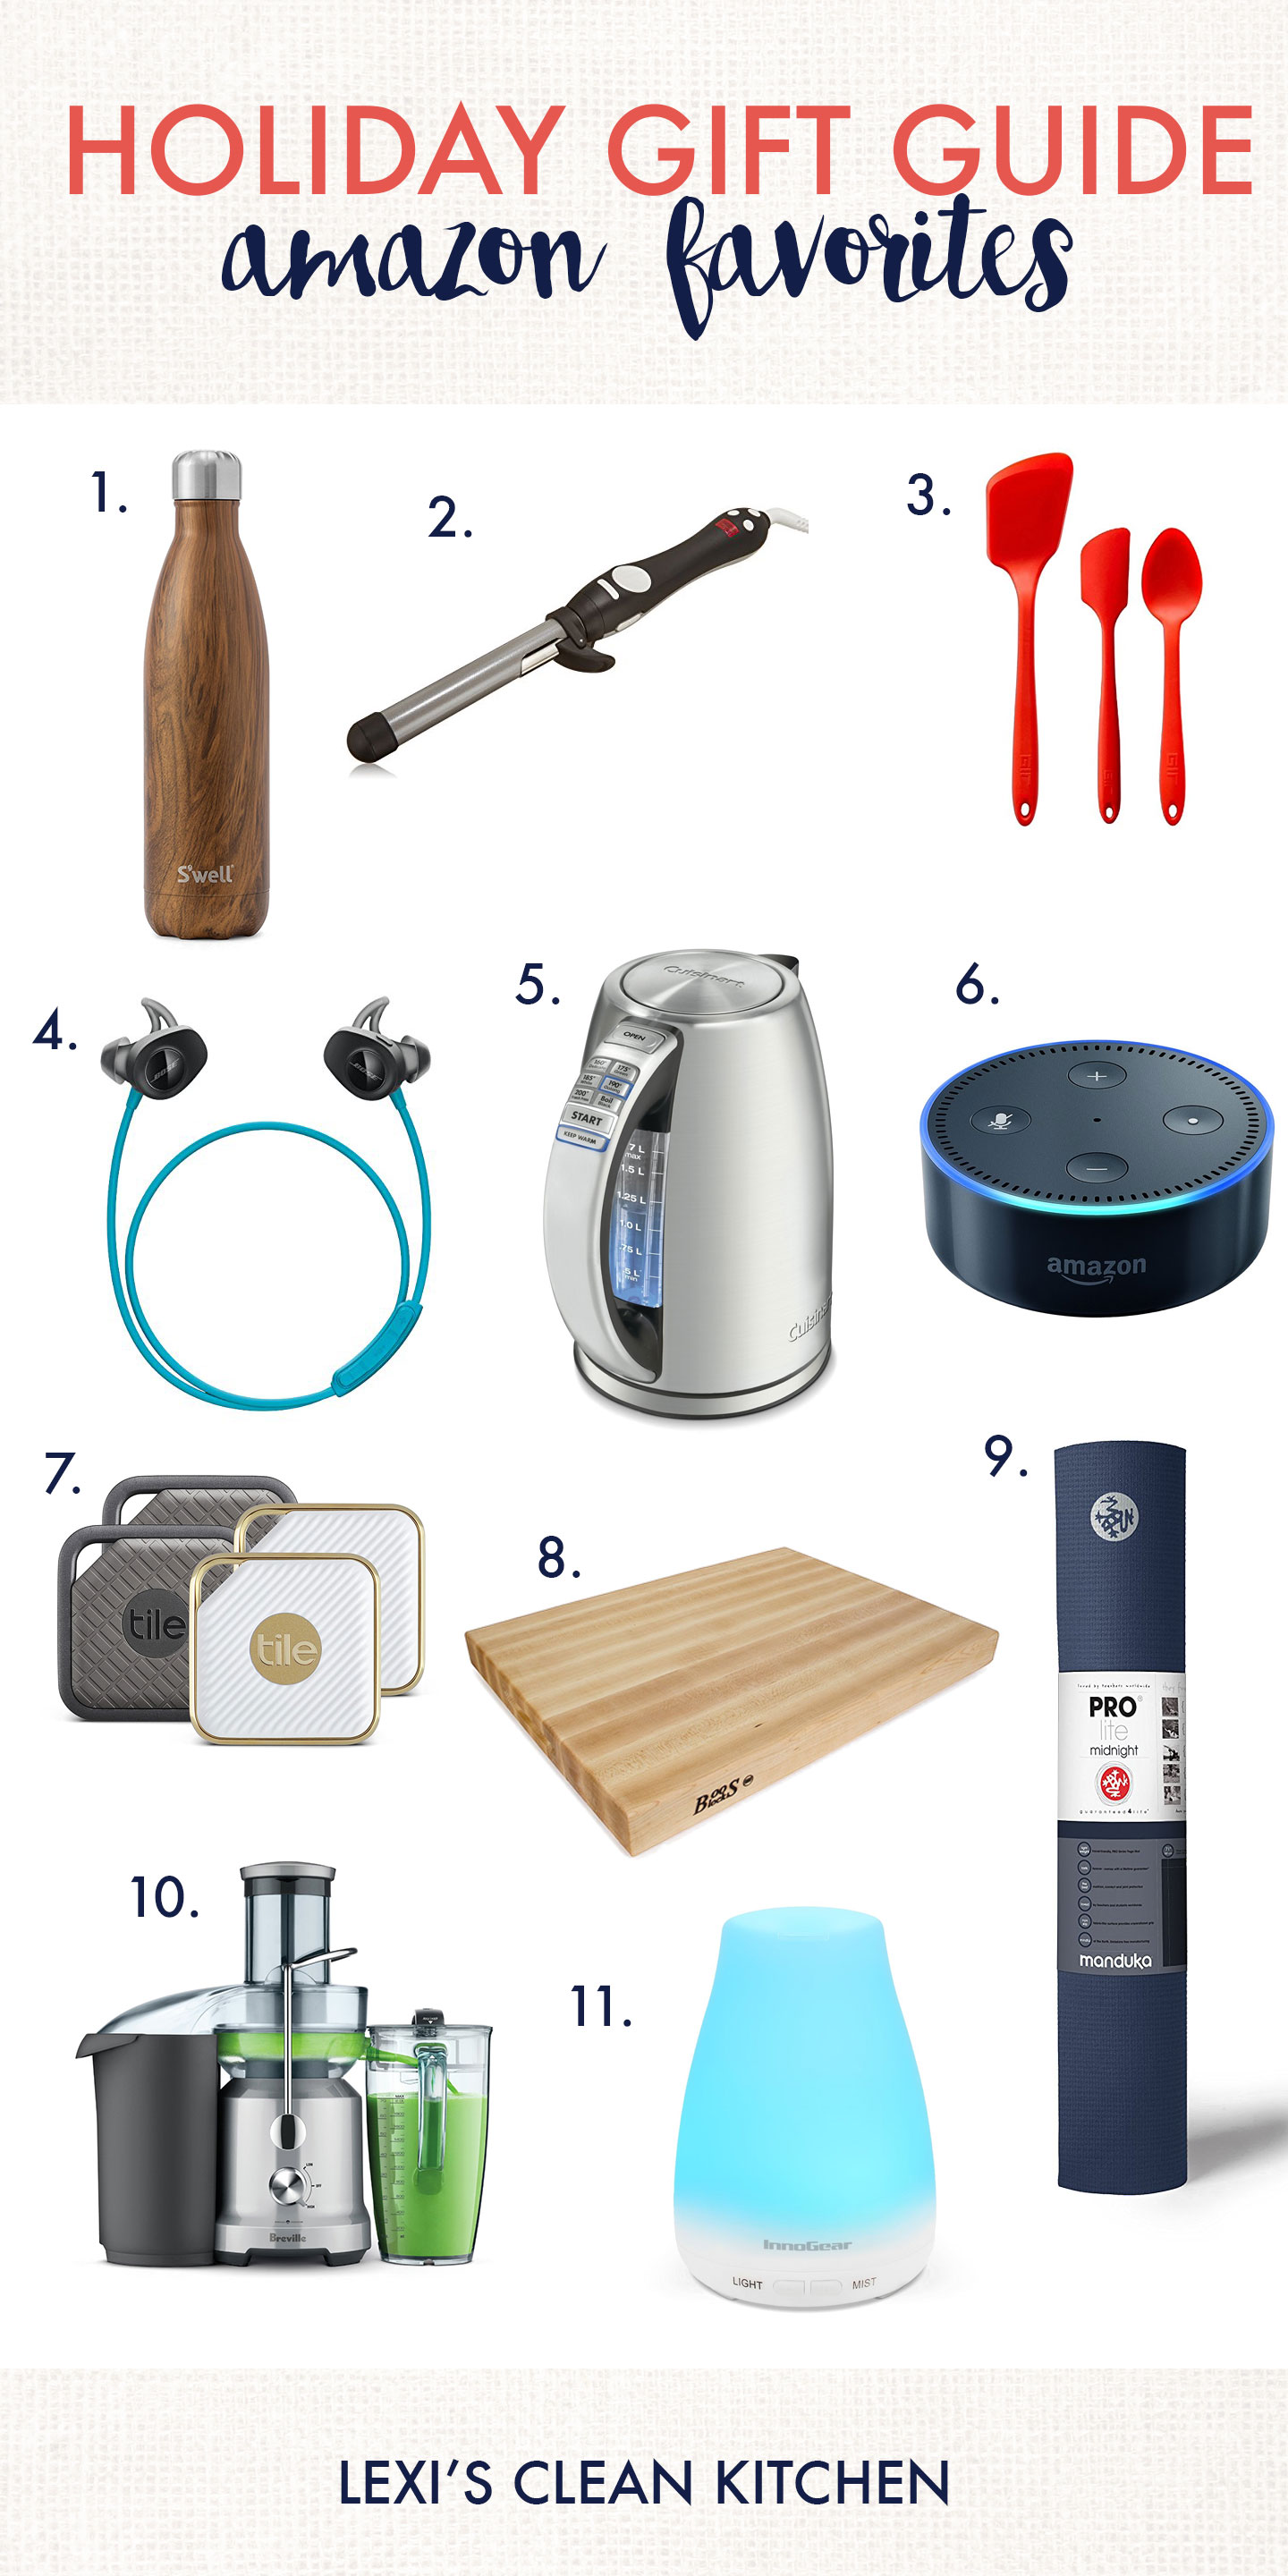 Holiday Gift Guide Amazon Favorites 2017 - Lexi's Clean Kitchen